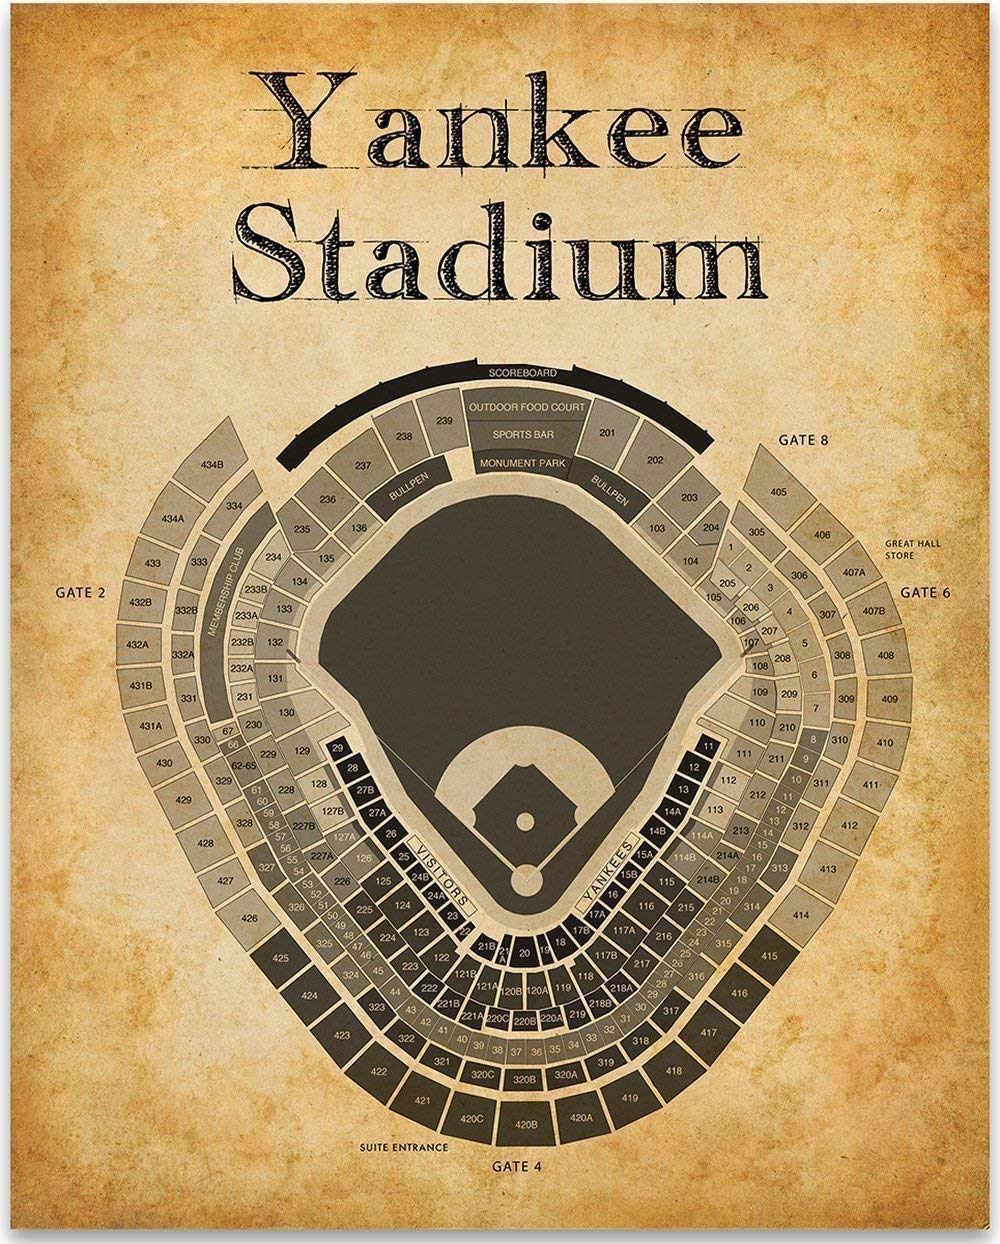 Yankee Stadium Baseball Seating Chart - 11x14 Unframed Art Print - Great  Sports Bar Decor and Gift Under $15 for Baseball Fans